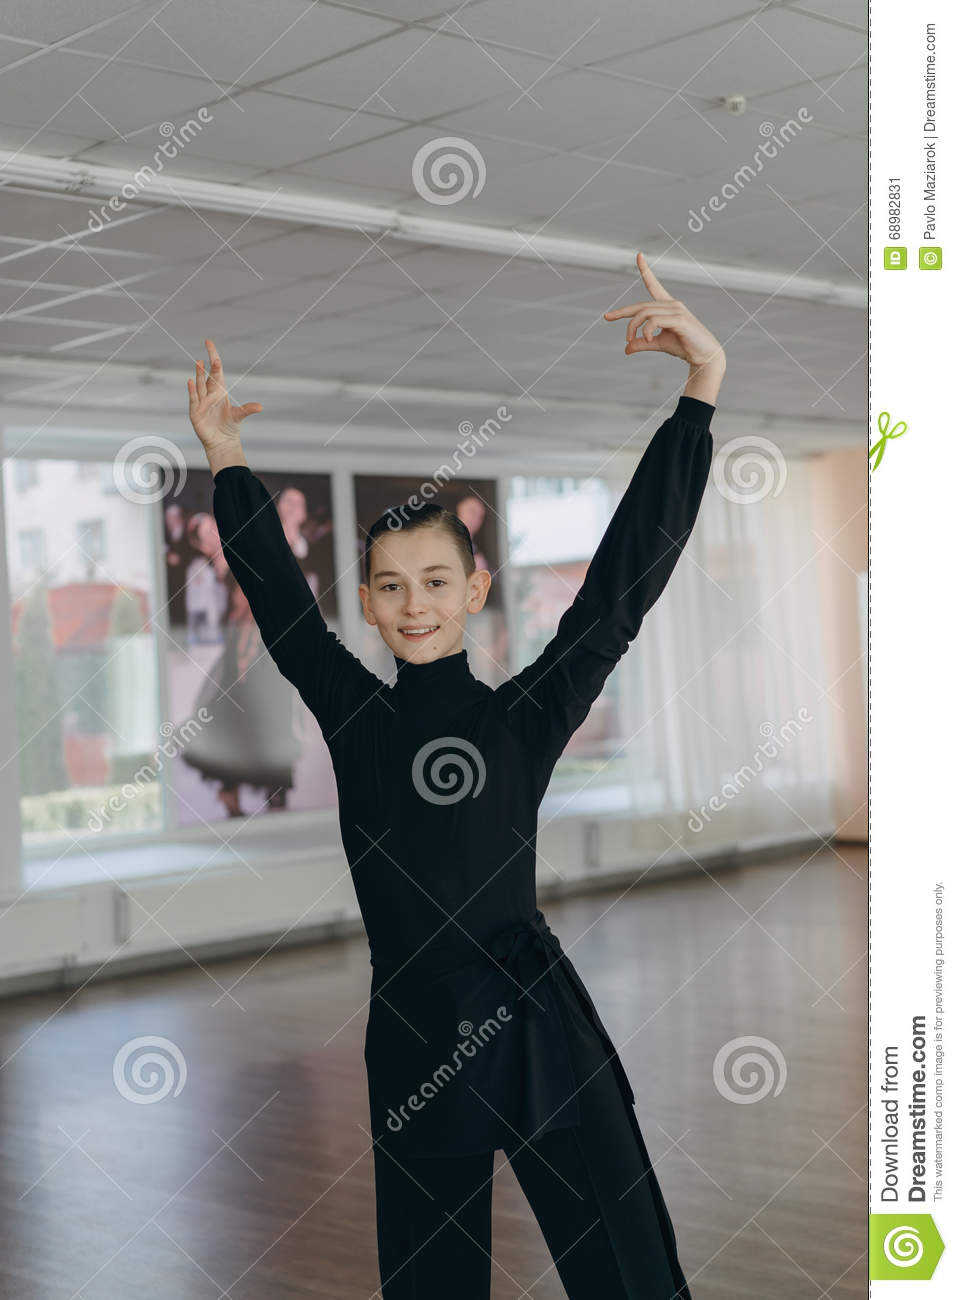 Portrait of a young boy who is engaged in dancing